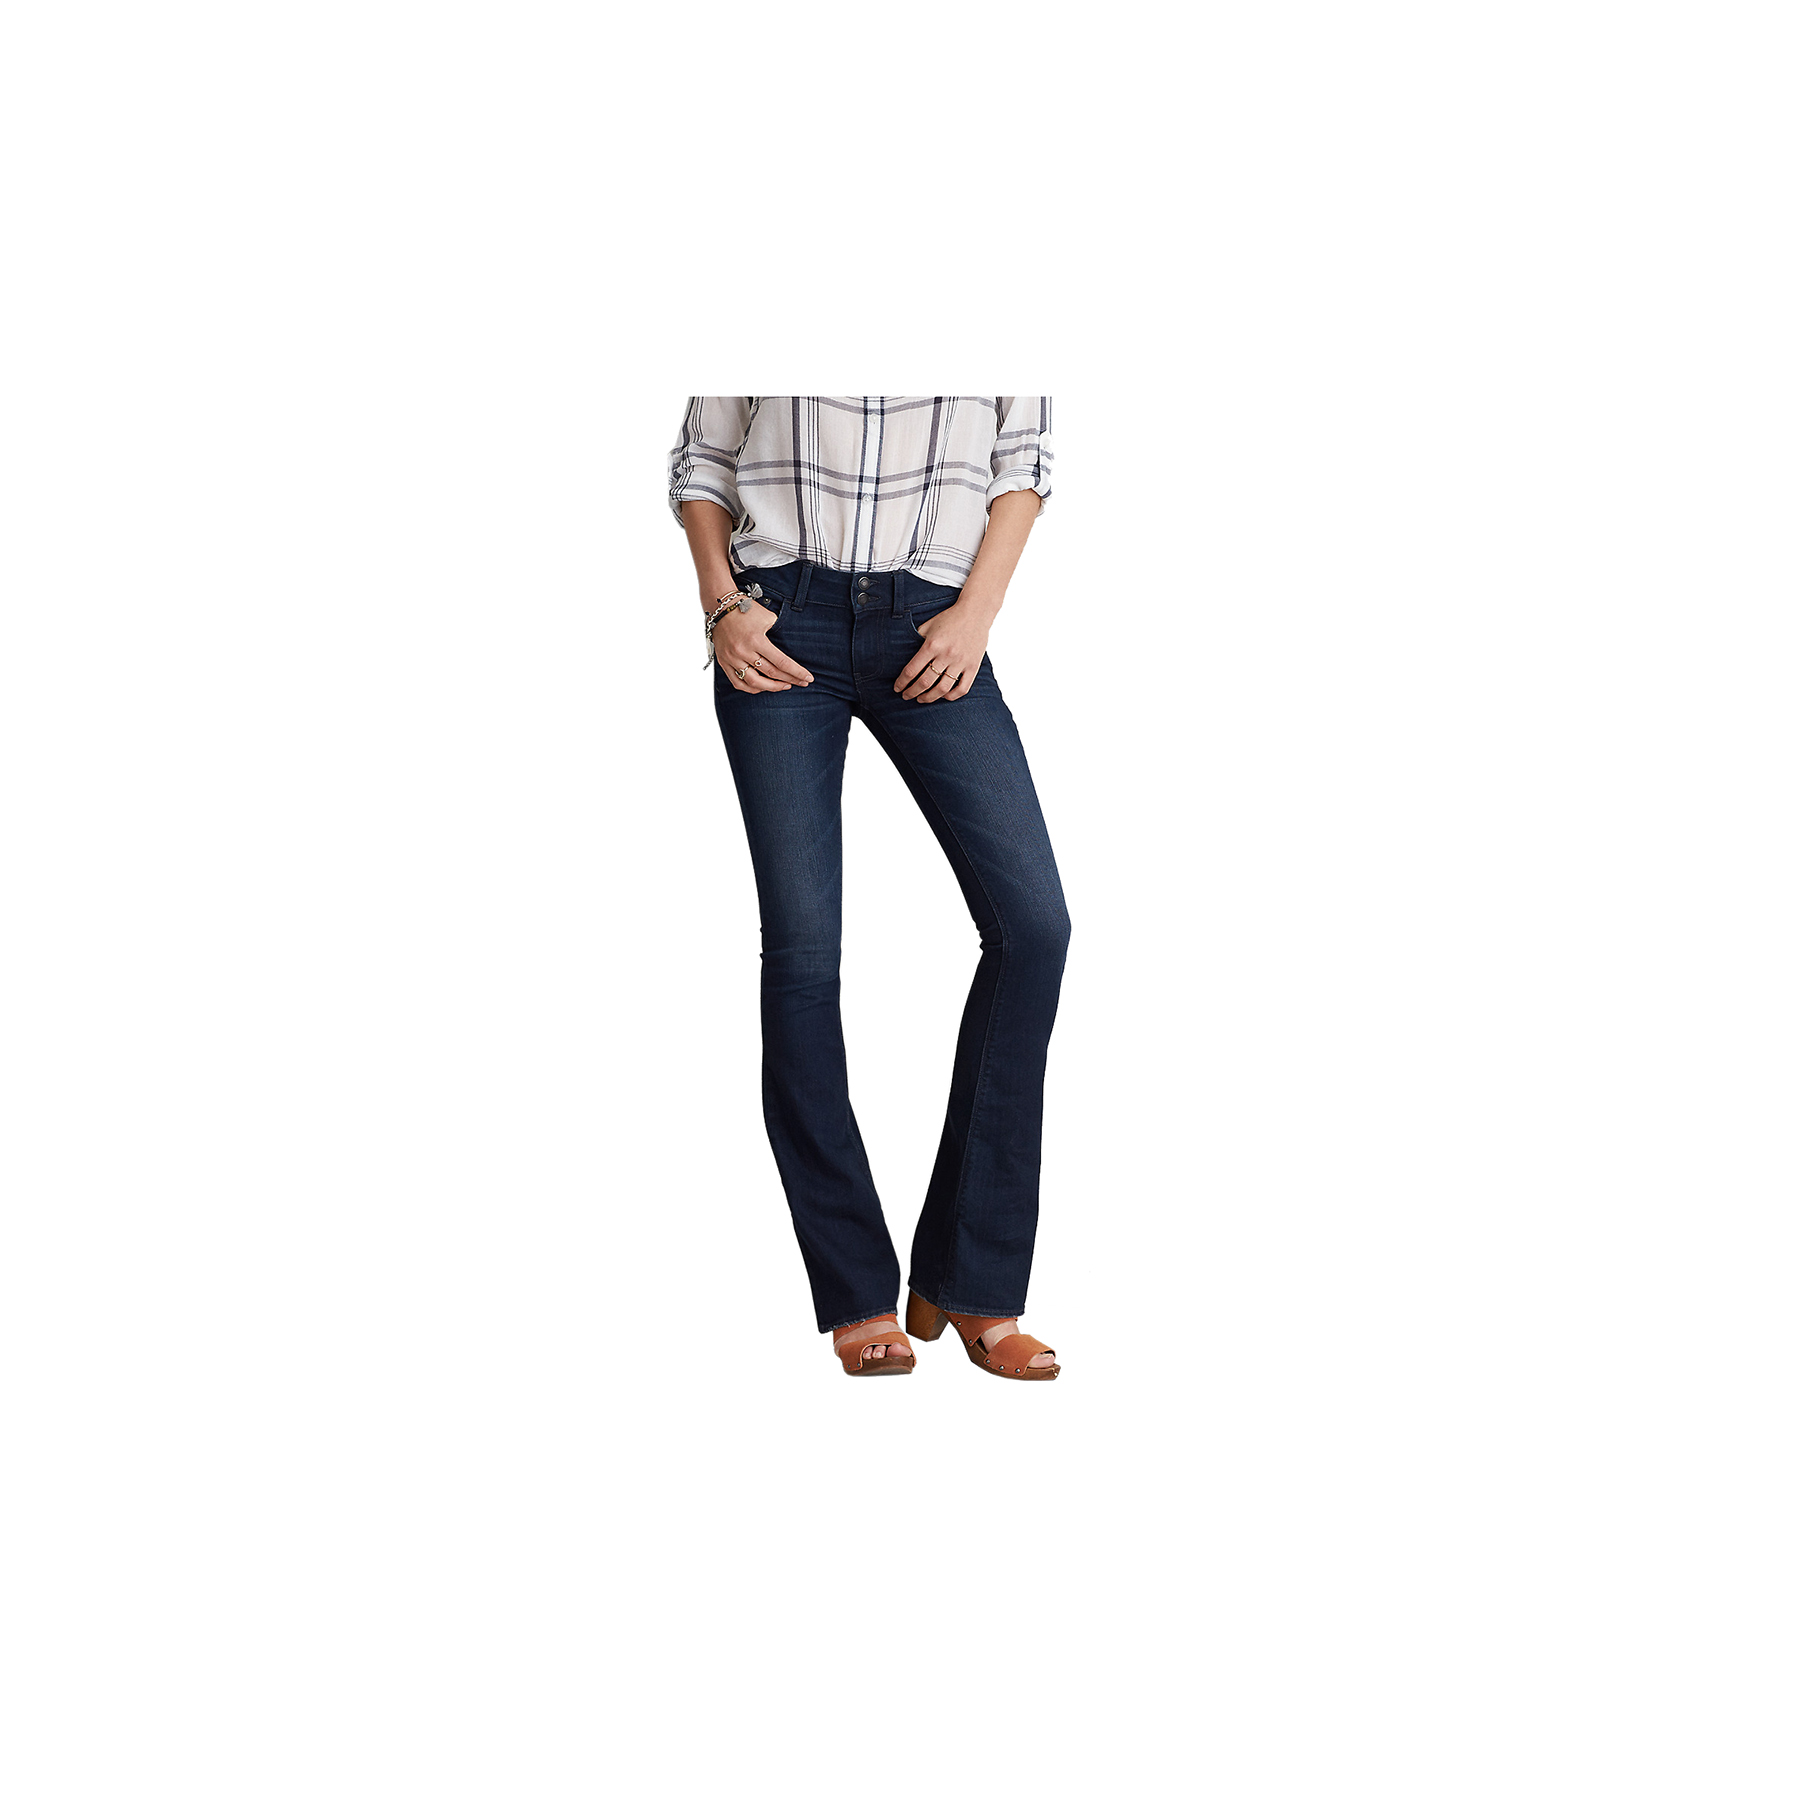 For a Tummy: Dressier Jeans